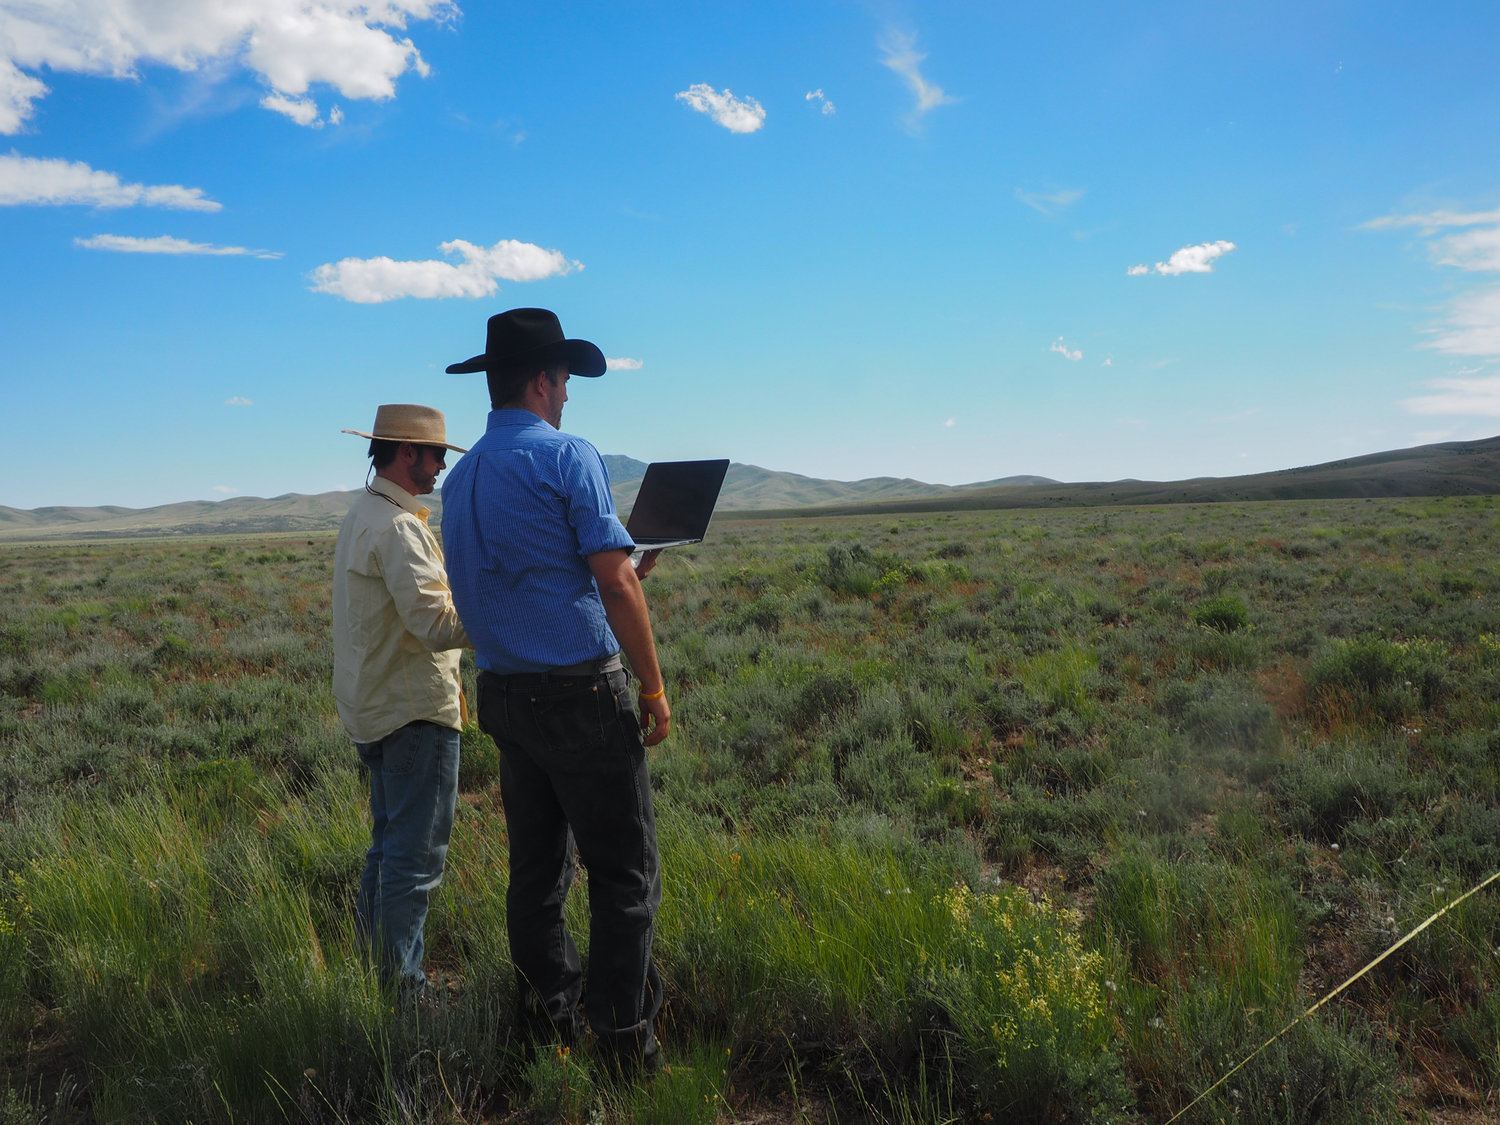 Lucas+Phipps,+University+of+Nevada-Reno,+and+Ethan+Mower,+Nevada+Department+of+Agriculture,+compare+models+for+remote+sensing+for+range+monitoring+with+on+the+ground+conditions.jpg